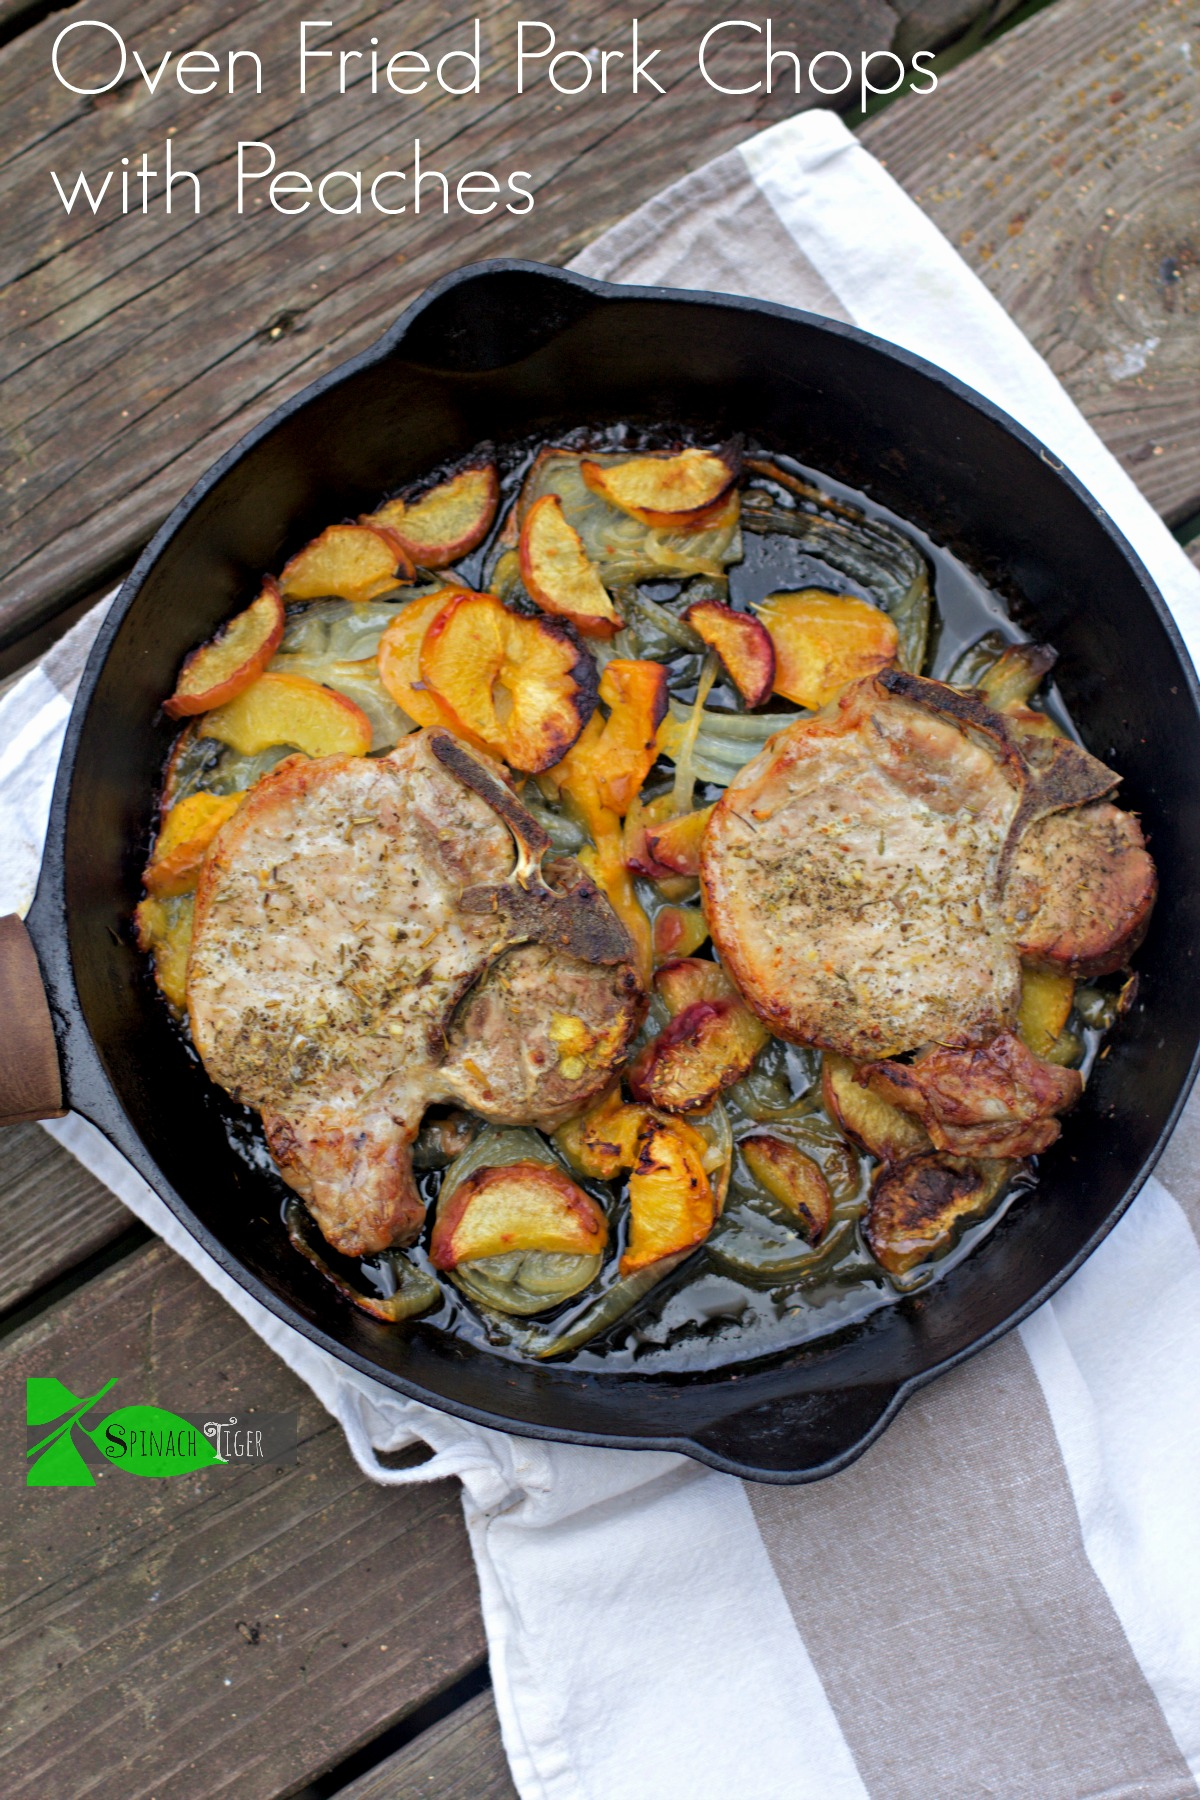 Pork chops with pizza. How to Freeze Peaches and My Best Peach Recipes from Spinach Tiger